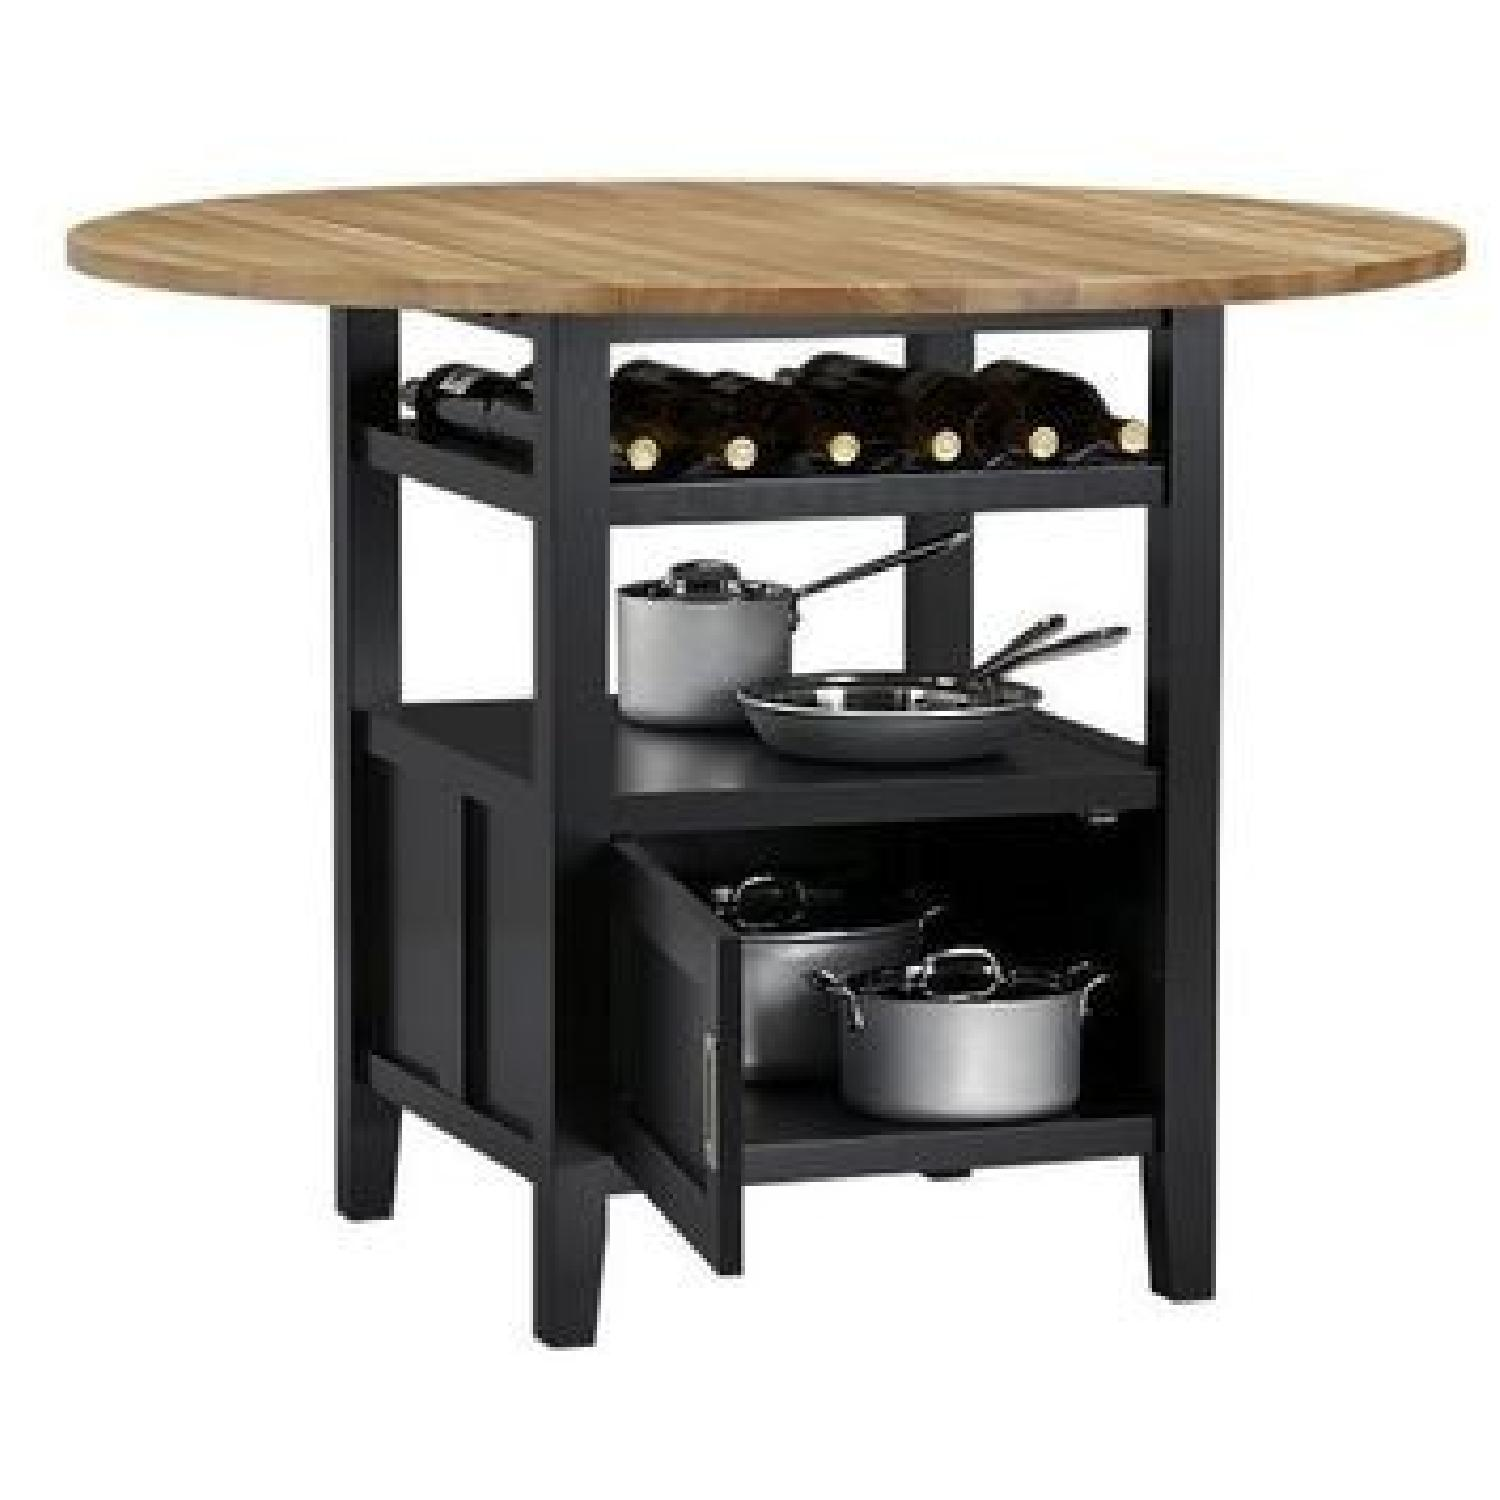 tables industrial rolling top kitchen benches bedroom tall and bar high table work heavy vanity ikea shop of dining black class shoe small steel made chairs bench duty